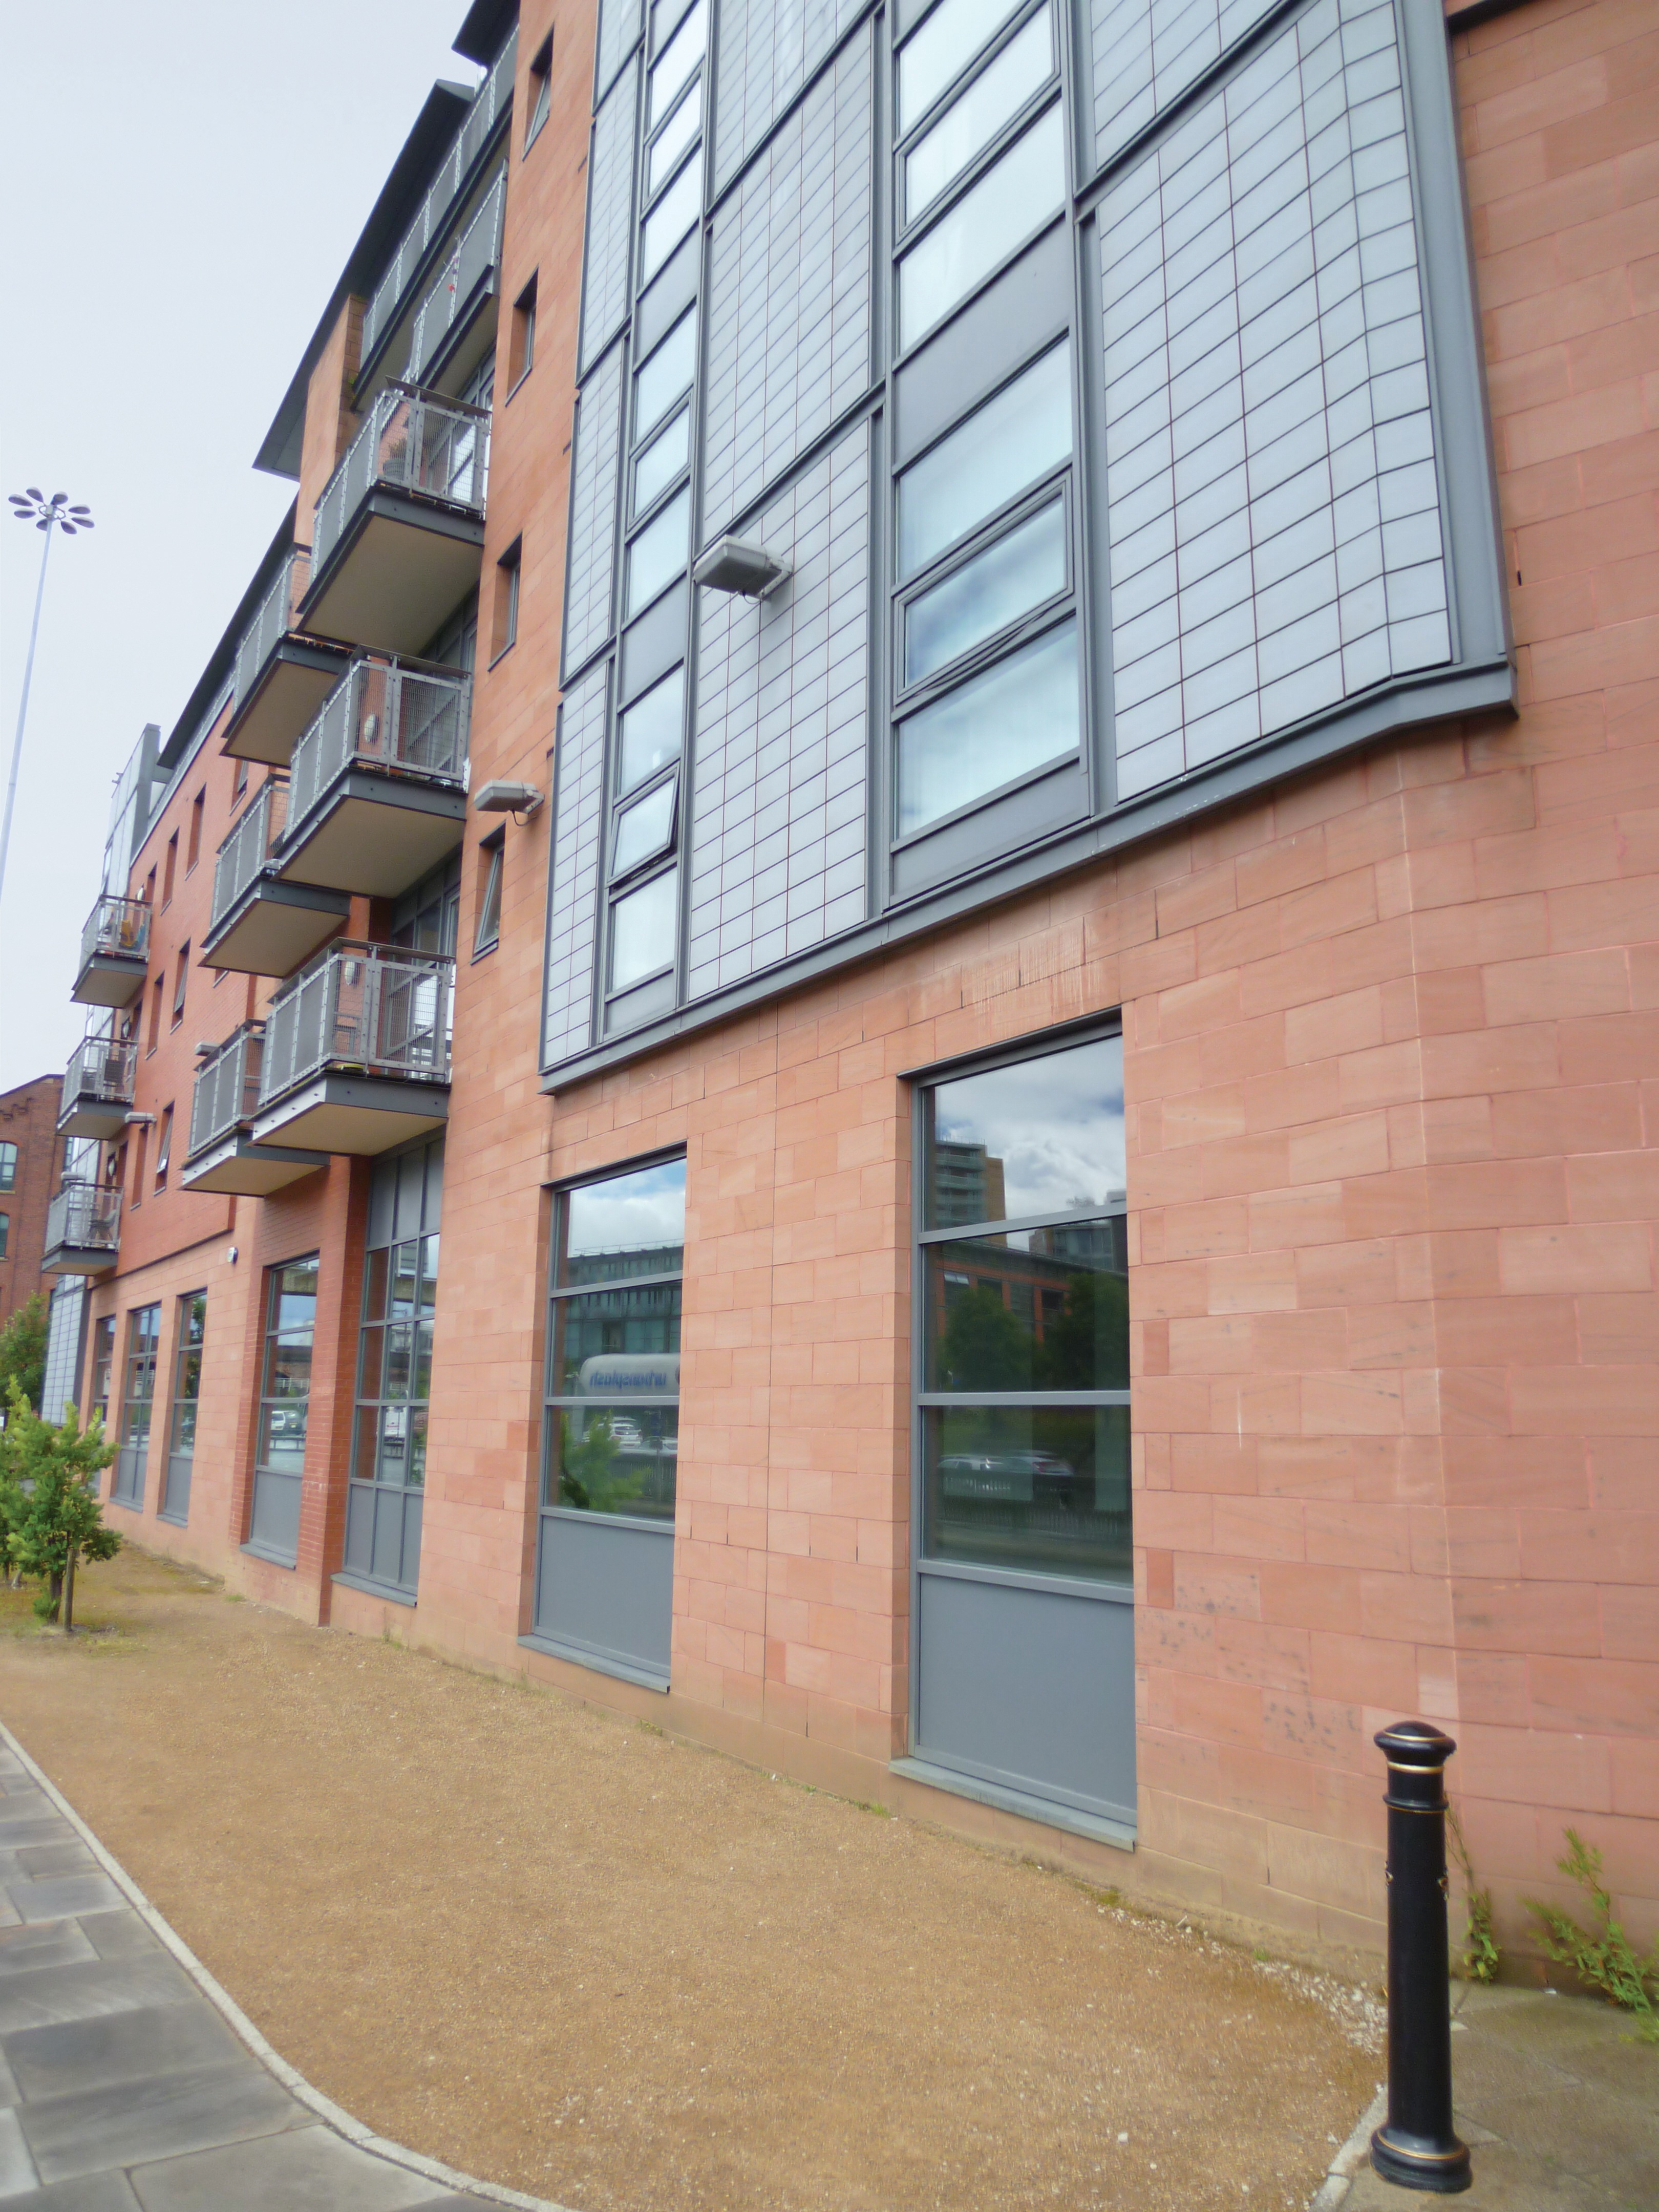 Apartments, Castlegate Manchester Case Study | Marshalls